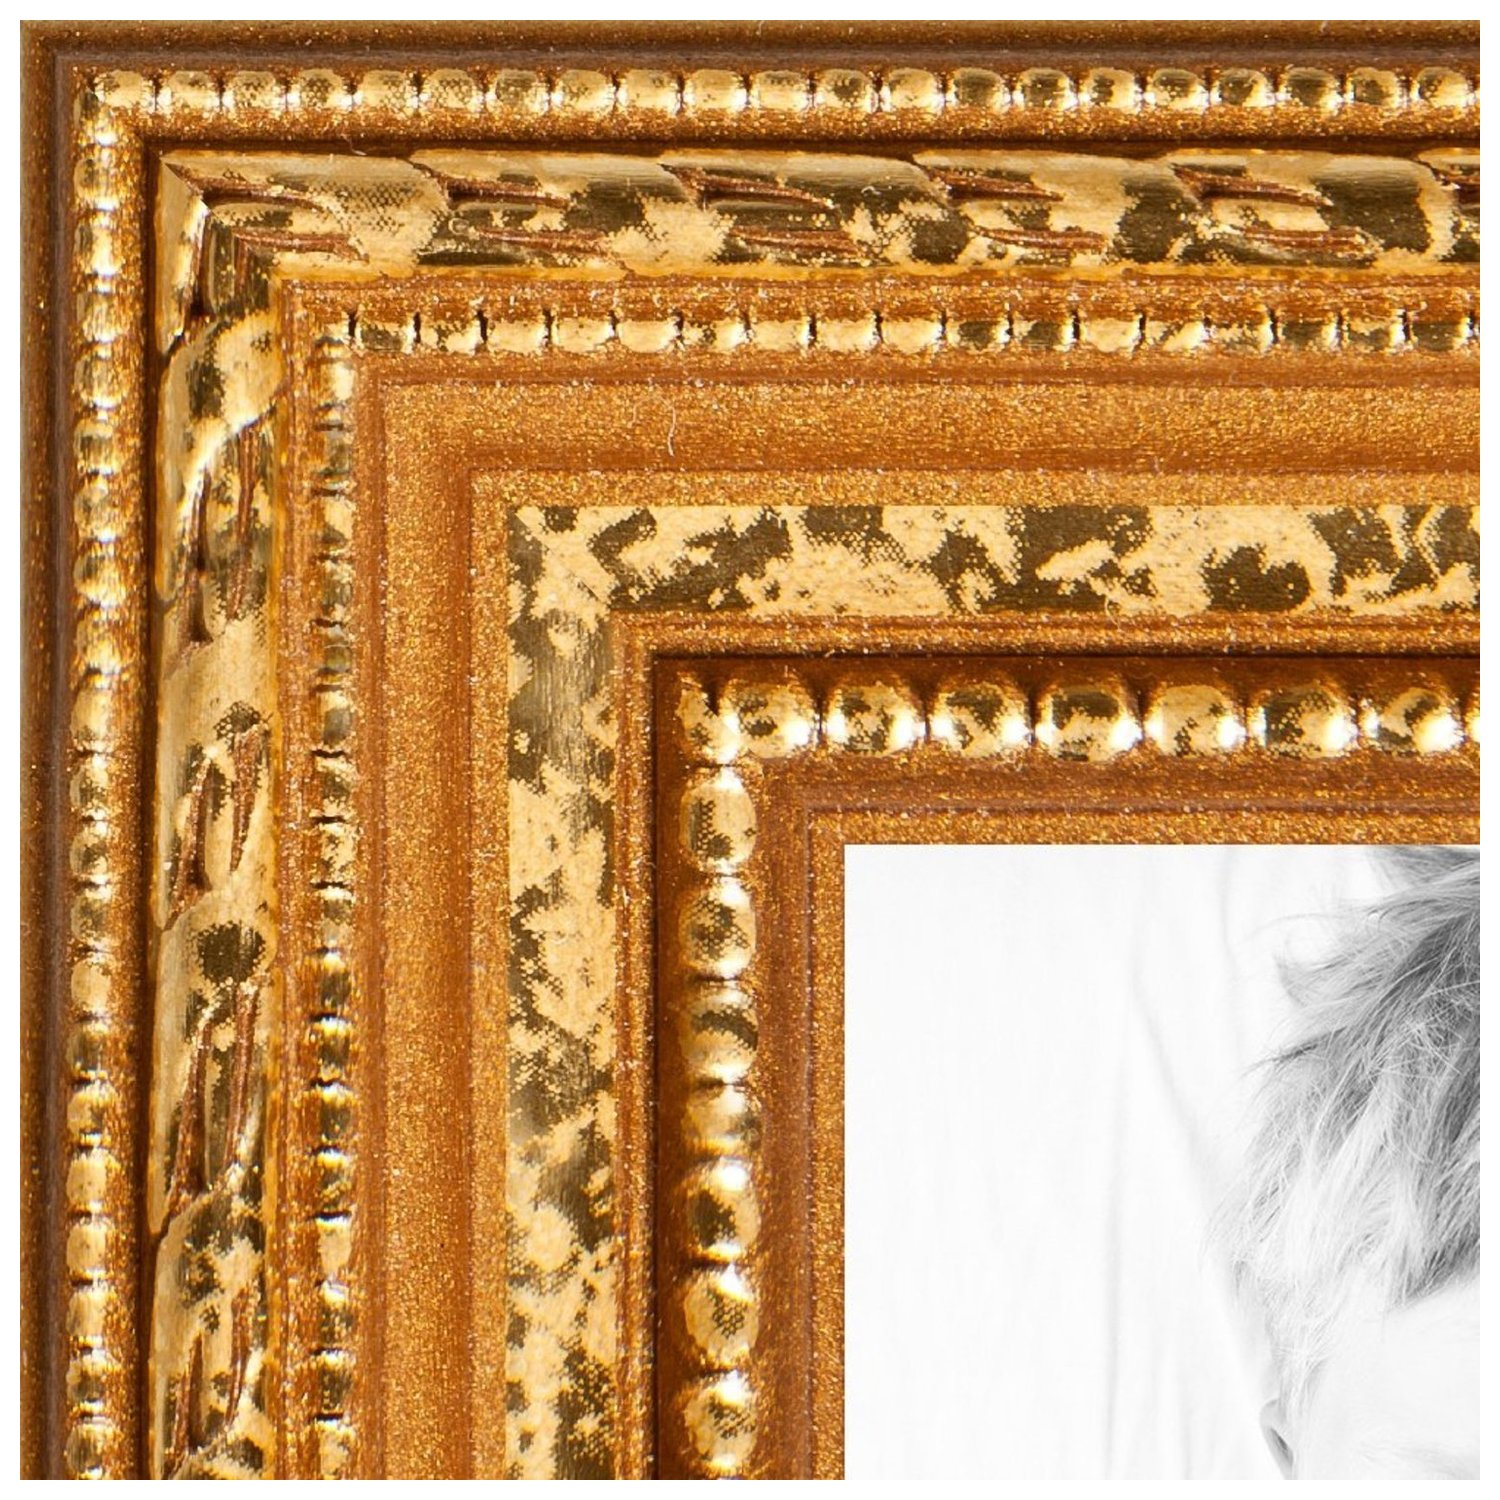 arttoframes 20x24 inch gold picture frame this gold wood poster frame is great for your art or photos comes with styrene 4317